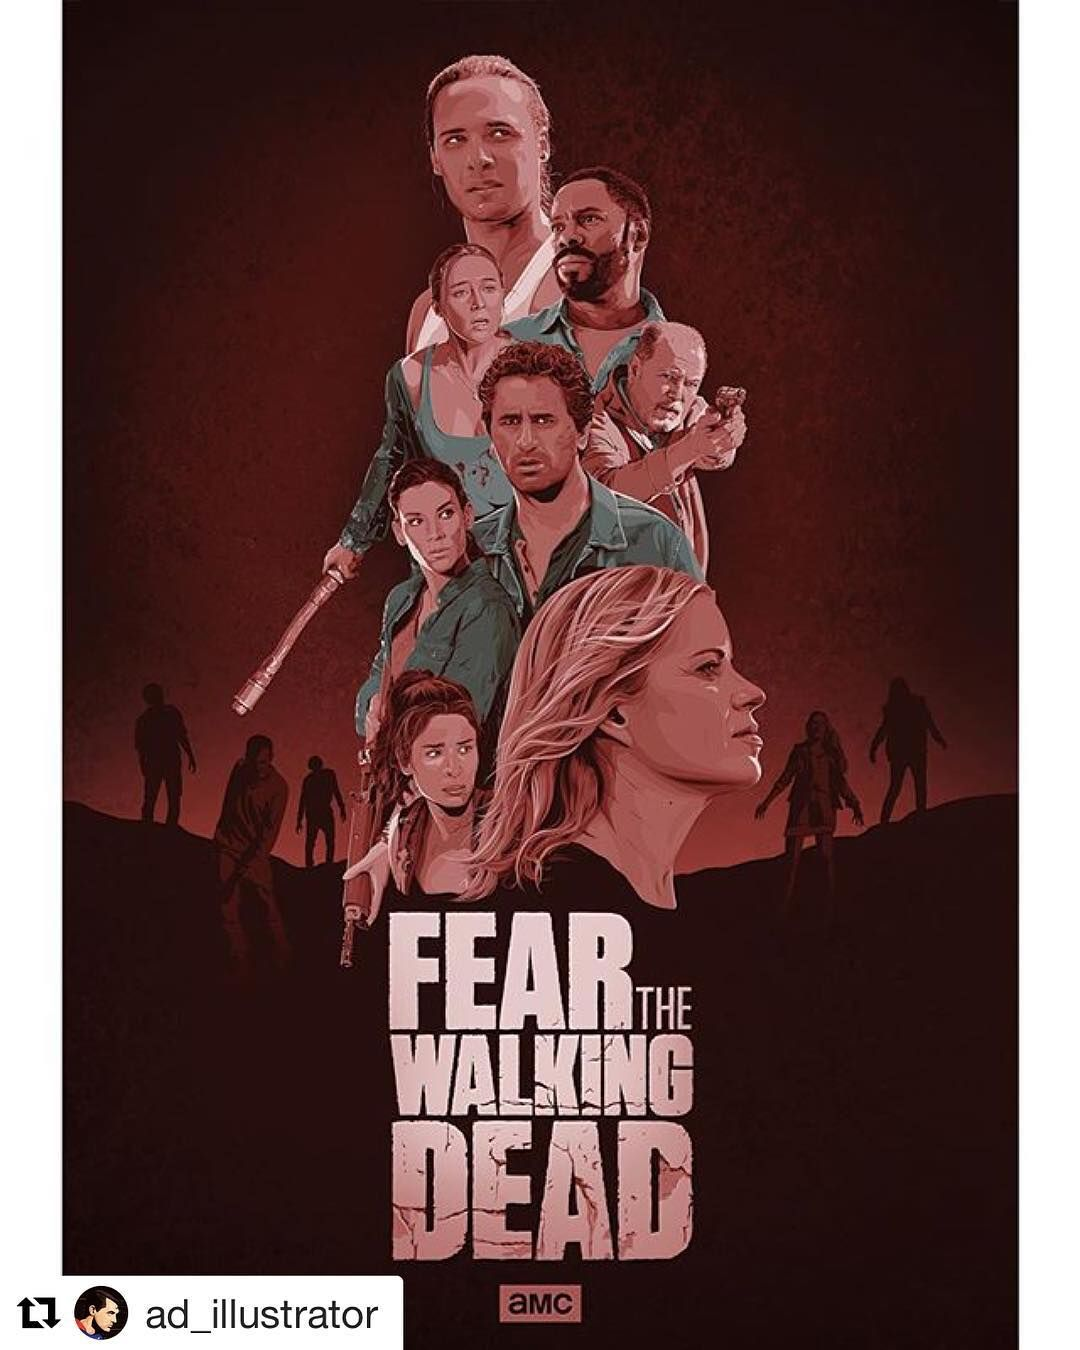 Da Um Look Nesse Poster Do Ad Illustrator Desse Spin Off Do The Walking Dead Thewalkingdead The Walking Dead Poster Fear The Walking Fear The Walking Dead